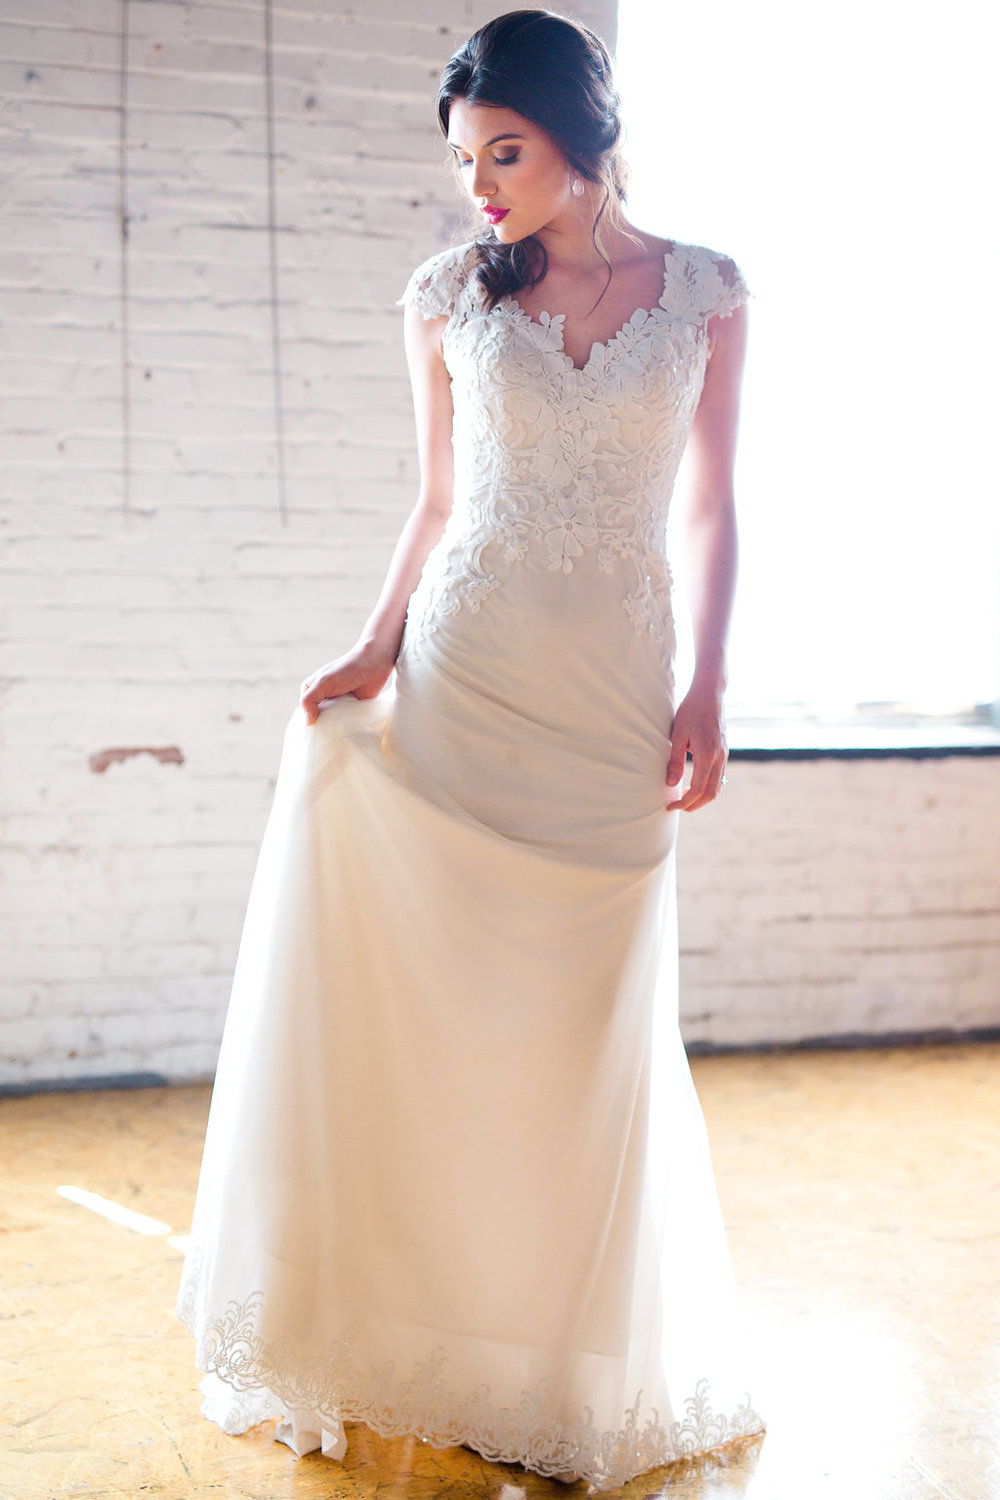 Gown: Lillian West from White Traditions Bridal House